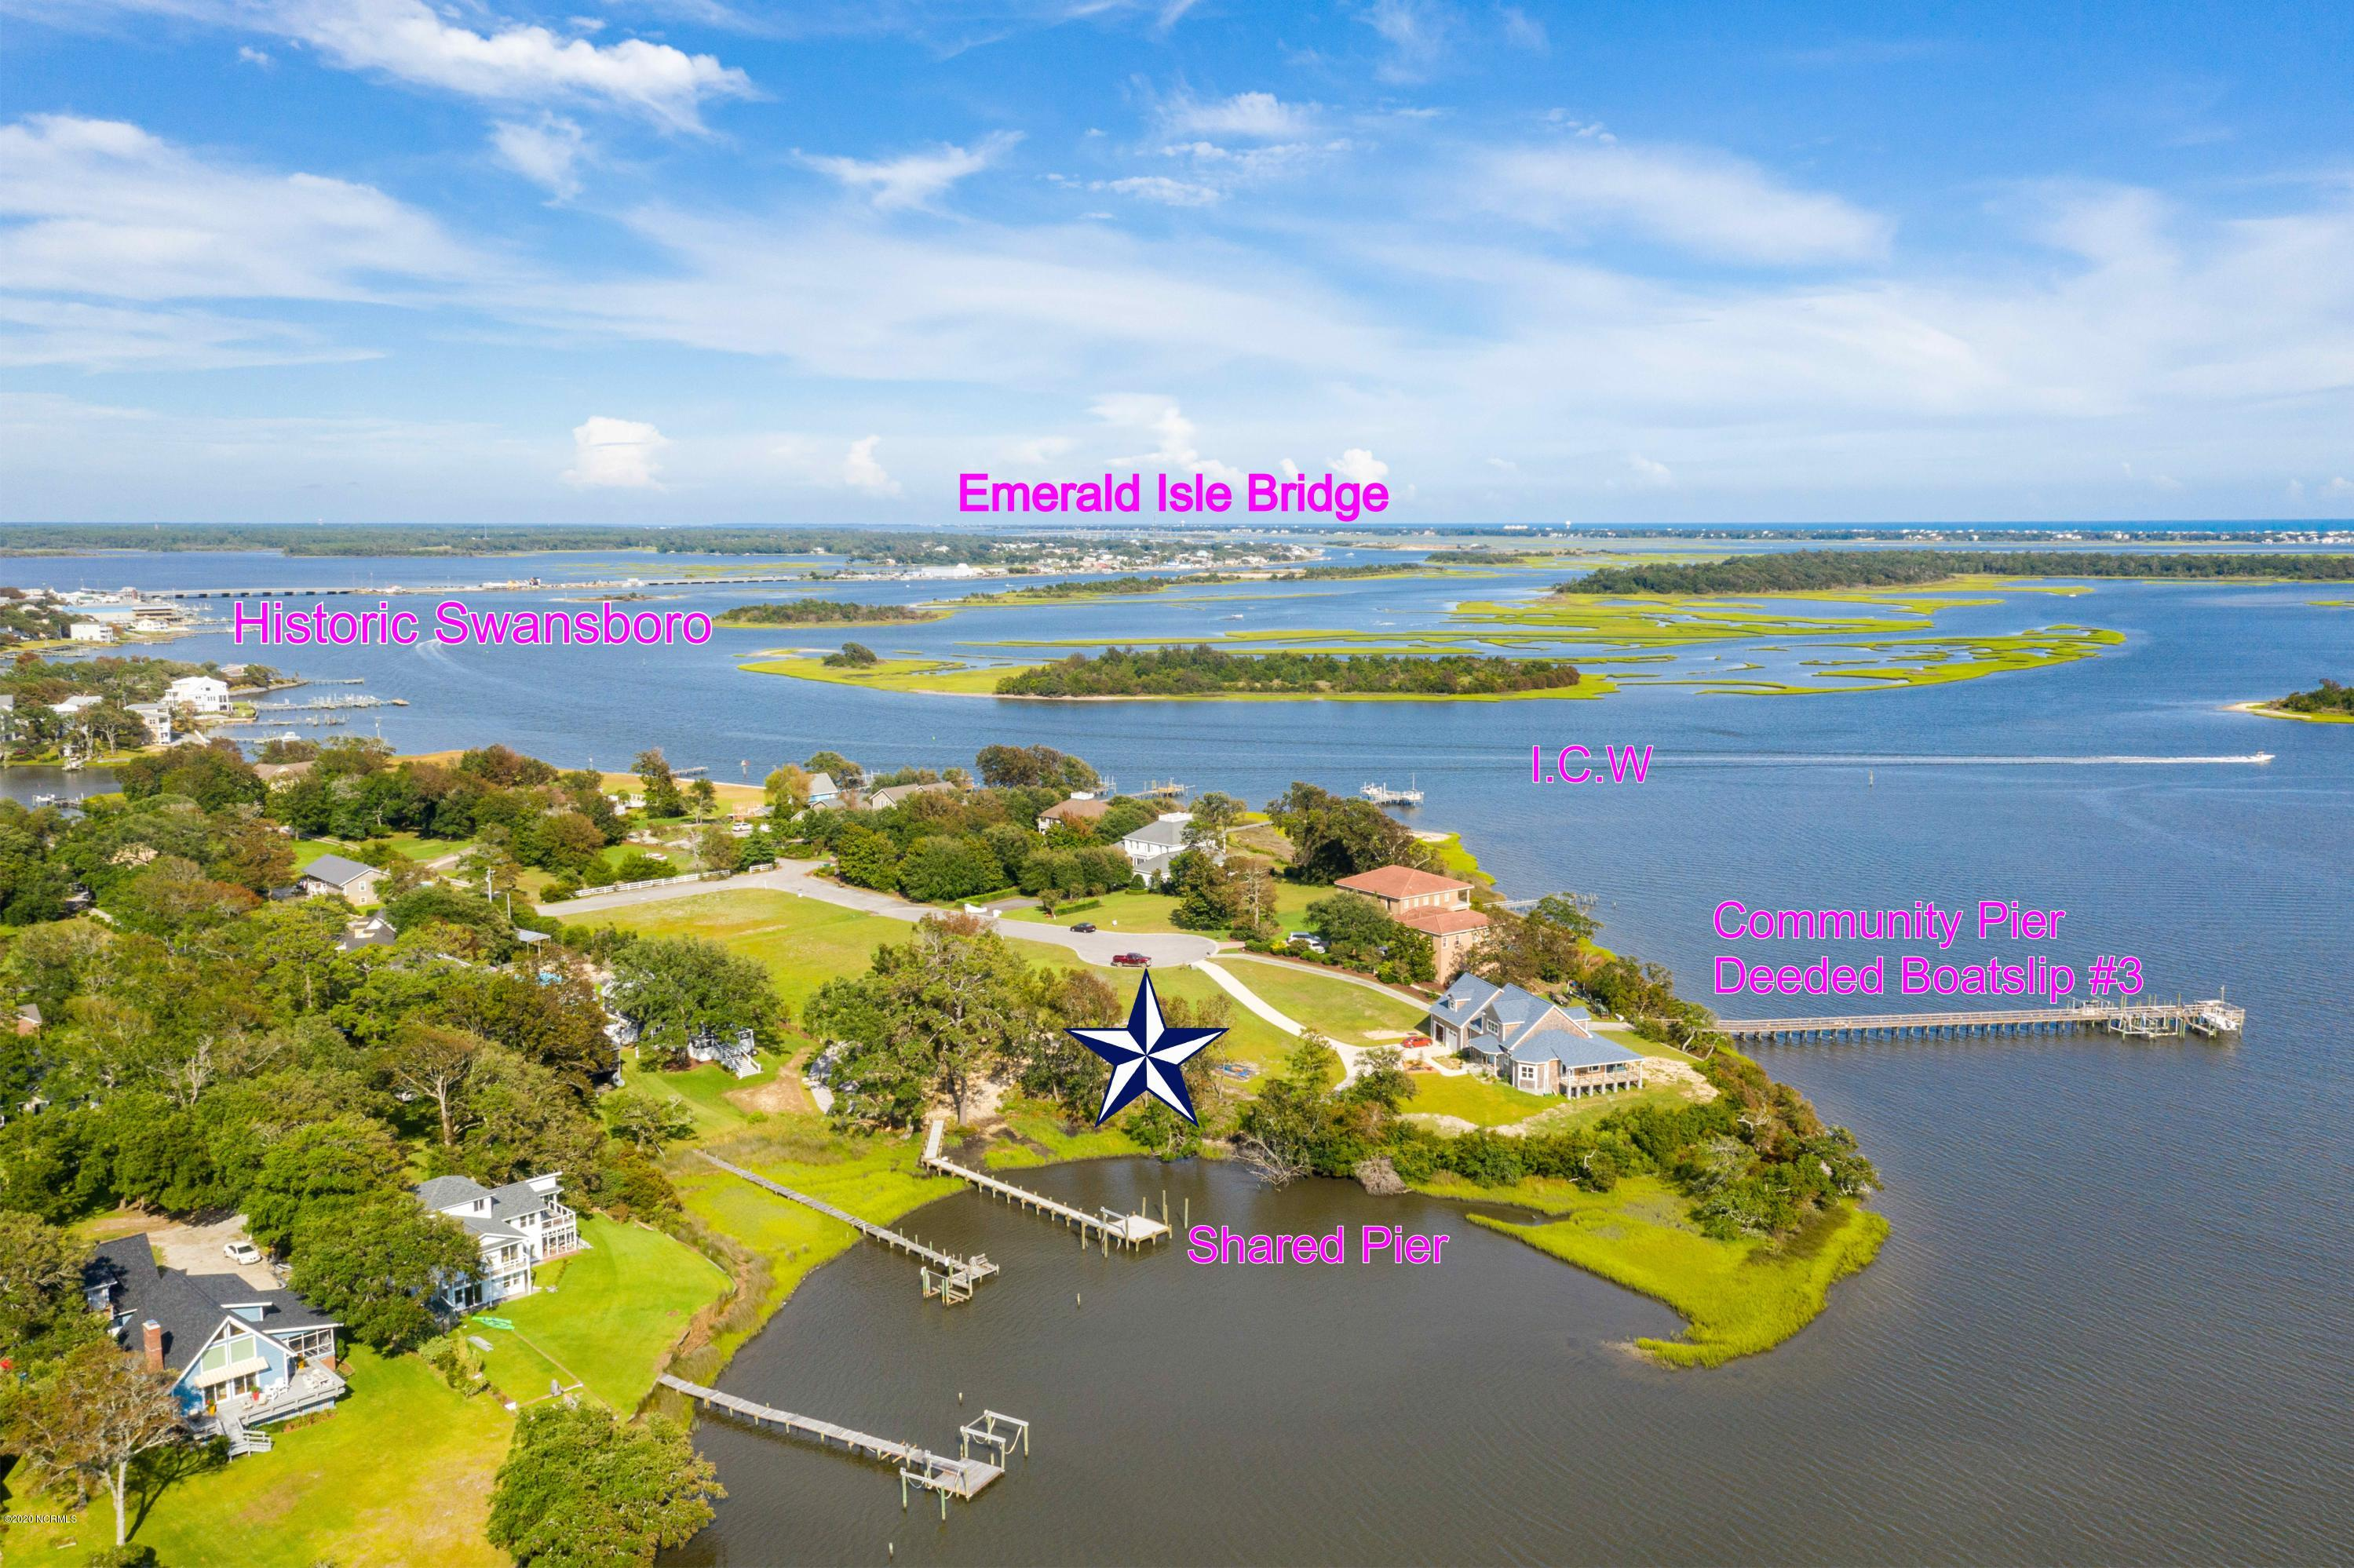 Beautiful high WATERFRONT lot on Jones Bay in the upscale neighborhood of Barbour Point in Swansboro NC. Only seconds via boat to the I.C.W and Historic Swansboro! Dine, Island hopping down the intracoastal, access the White Oak River or the Atlantic Ocean. Lot features include a shared pier with easement between the neighboring lot PLUS a DEEDED Boatslip #3 on the Community Pier. Property is located on a quiet Cul-De-Sac. The walkway to the community pier & boat slip is one lot over. Expired 4 bedroom Septic permit on file. So many possibilities for this beautiful Waterfront lot. Conveniently located between Jacksonville, New Bern and  Morehead City.  Come take a look!